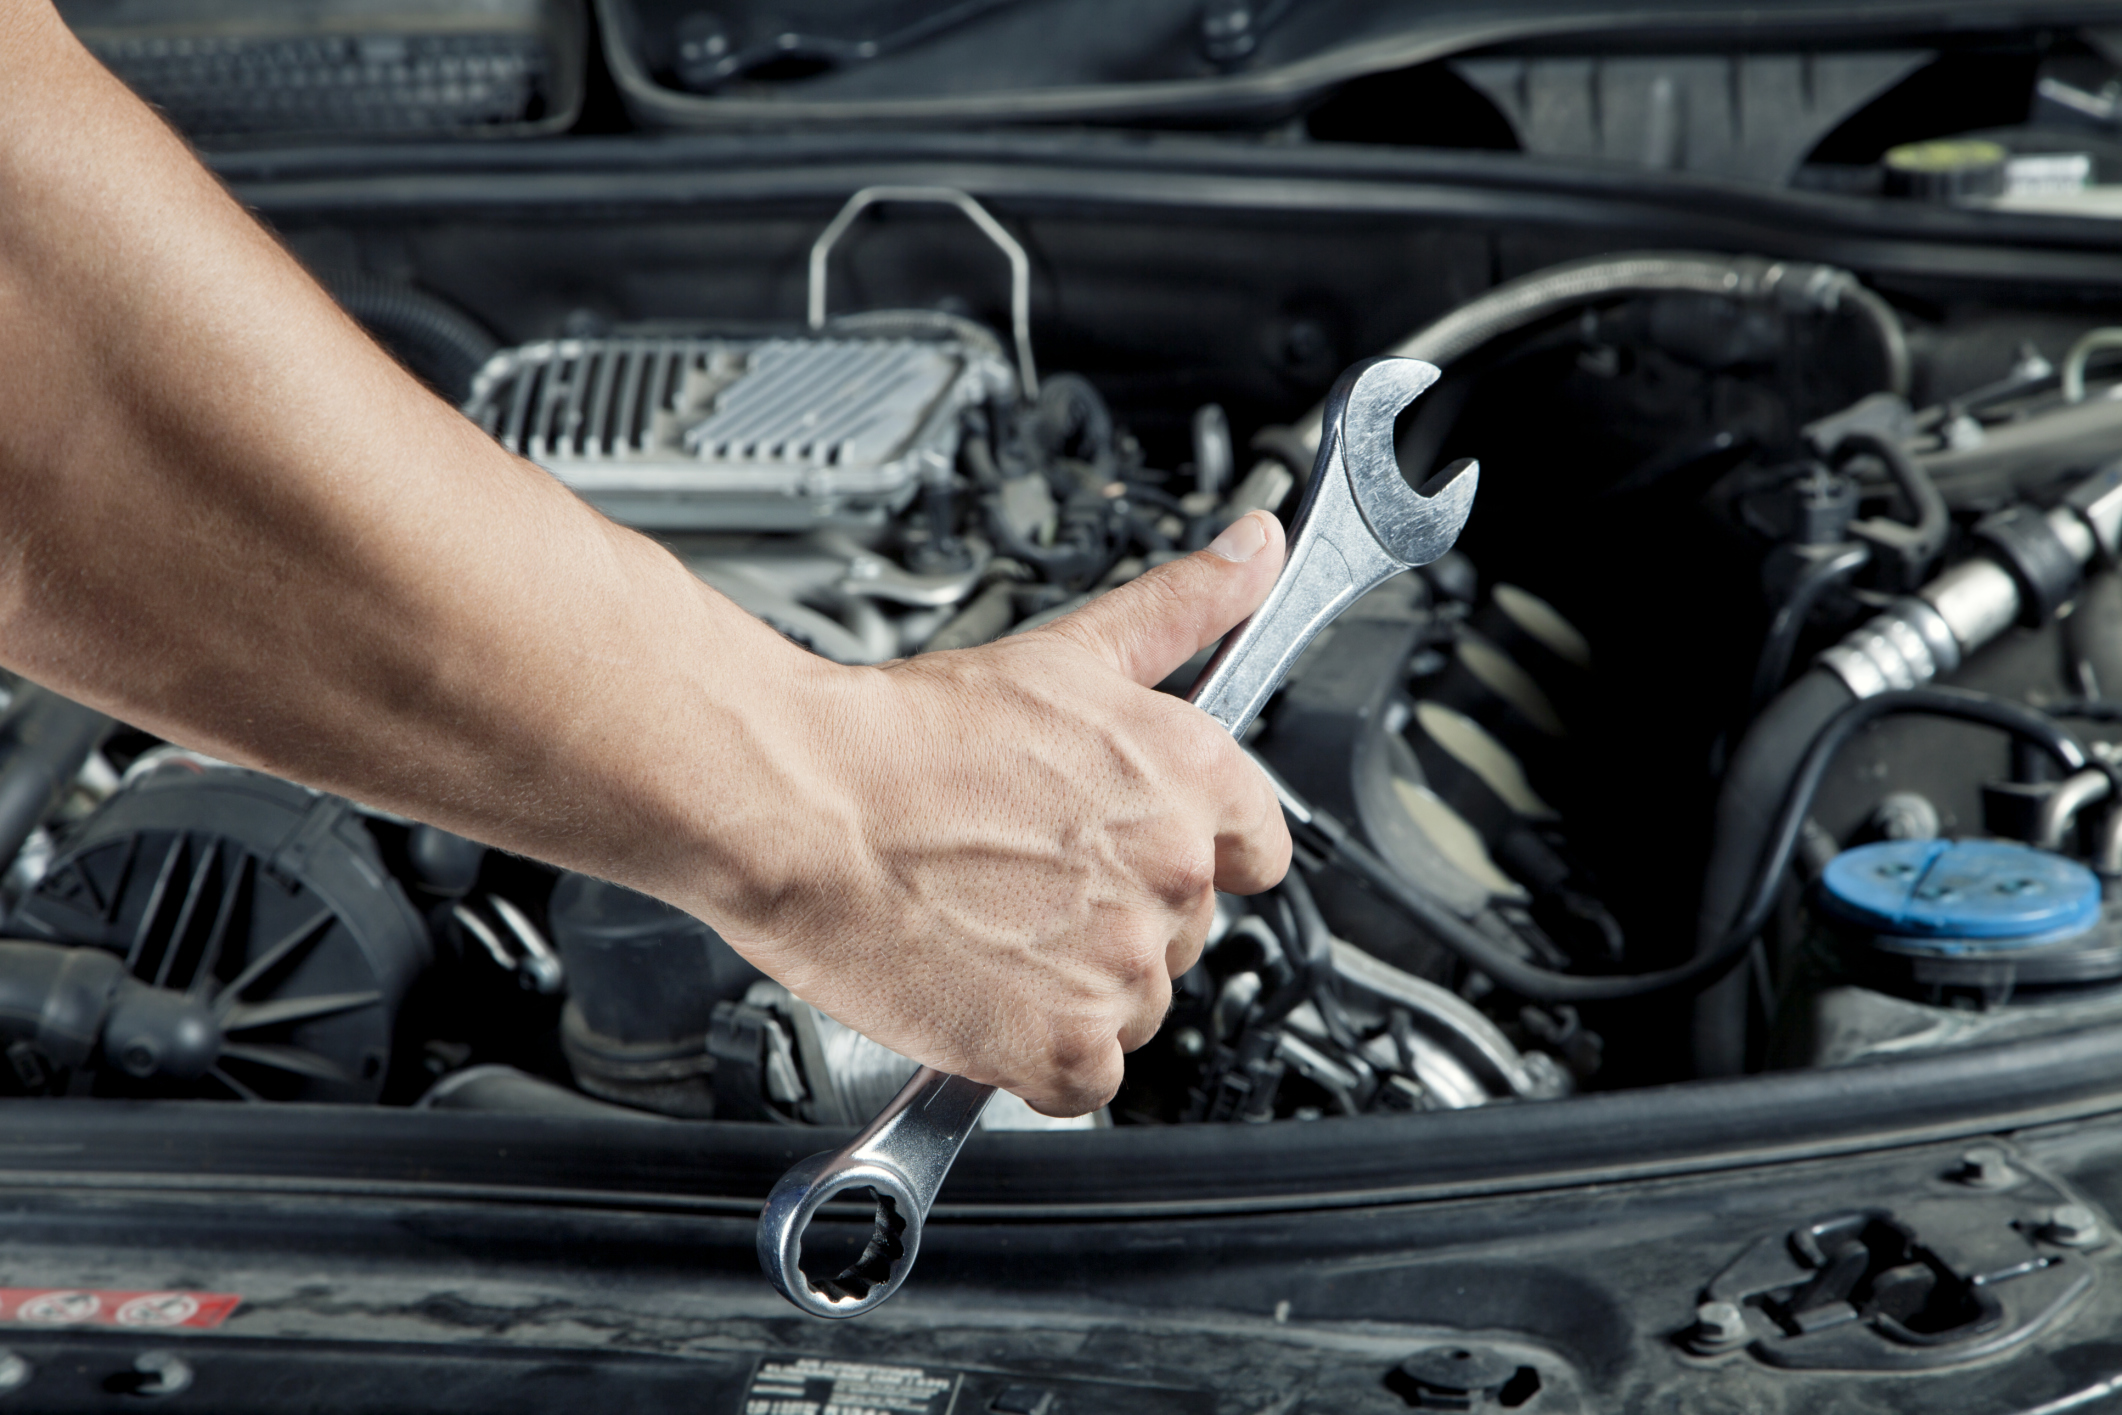 8 tips to buy car parts from Japan faster and cheaper